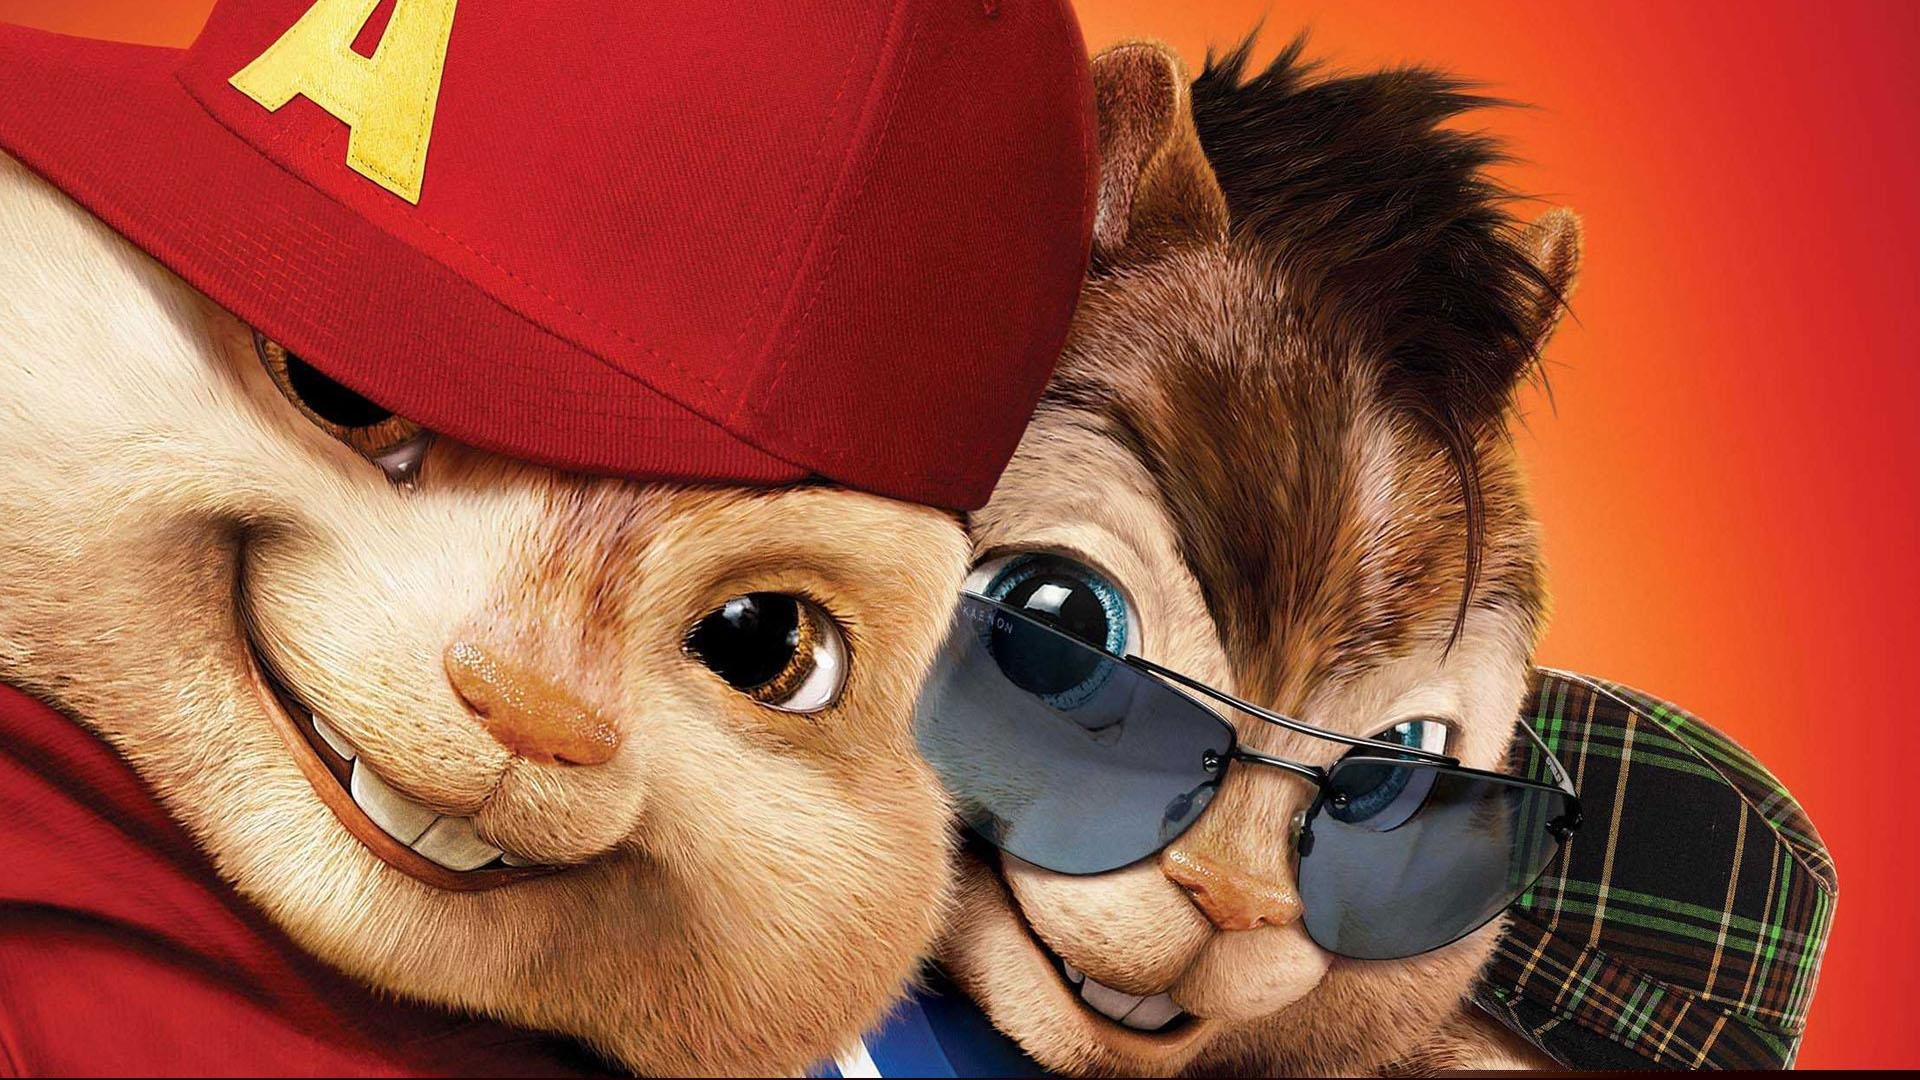 Alvin And The Chipmunks The Squeakquel Wallpapers